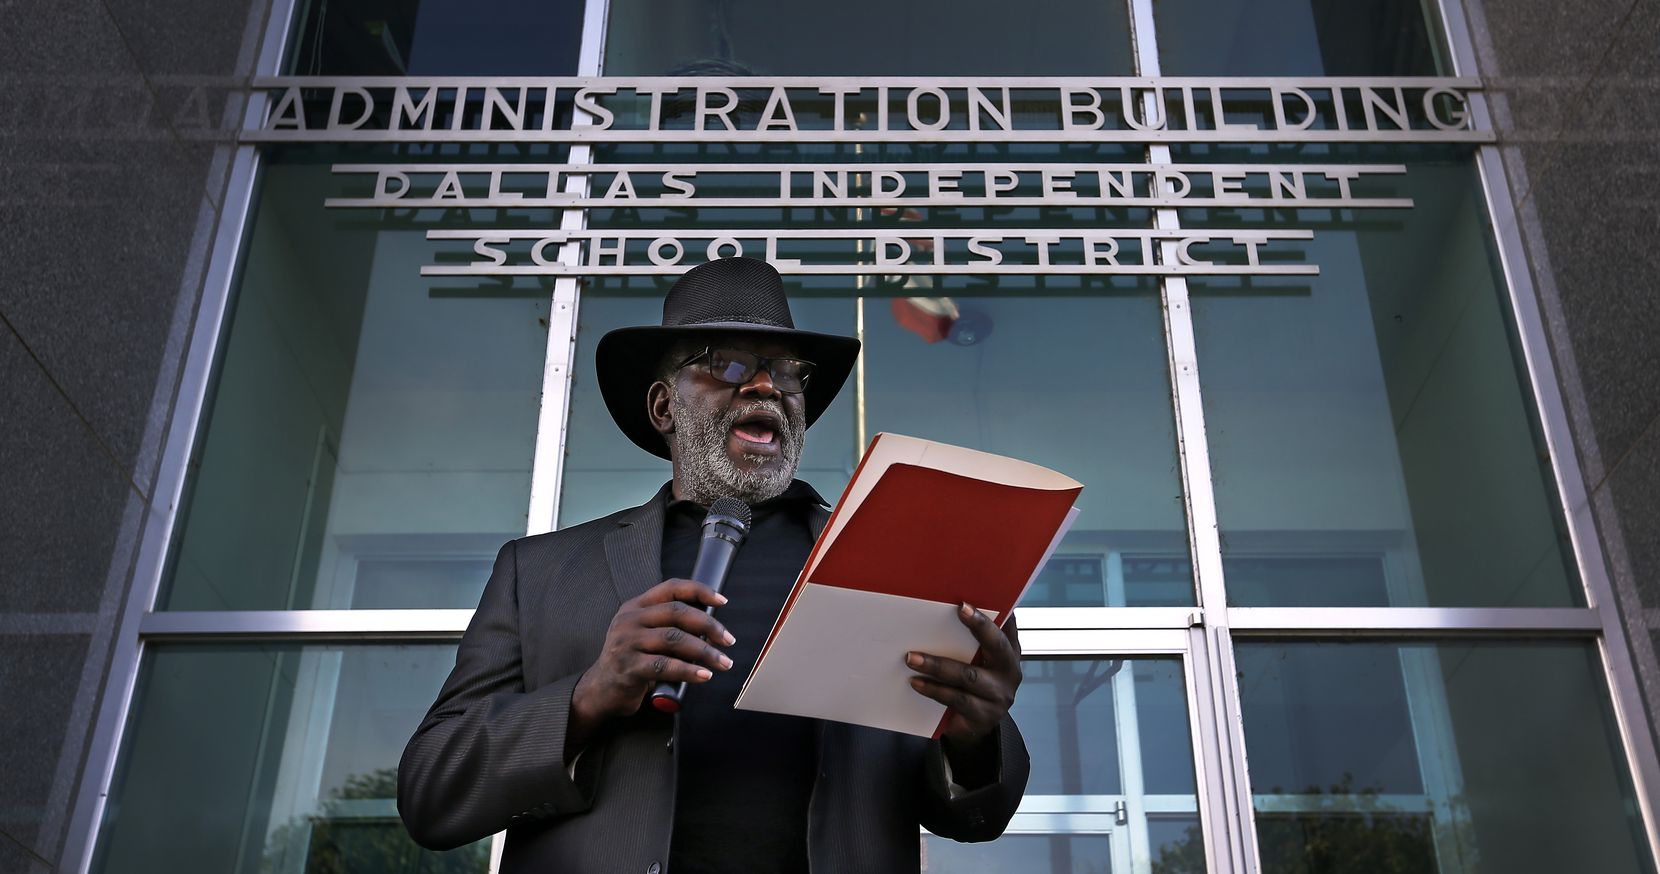 During a May 2017 rally by the Strong Schools, Strong Dallas coalition, Gerald Britt read a statement in support of the passage of a tax increase to help pay for additional programs and teachers in DISD schools. Dallas voters approved that initiative in November 2018.